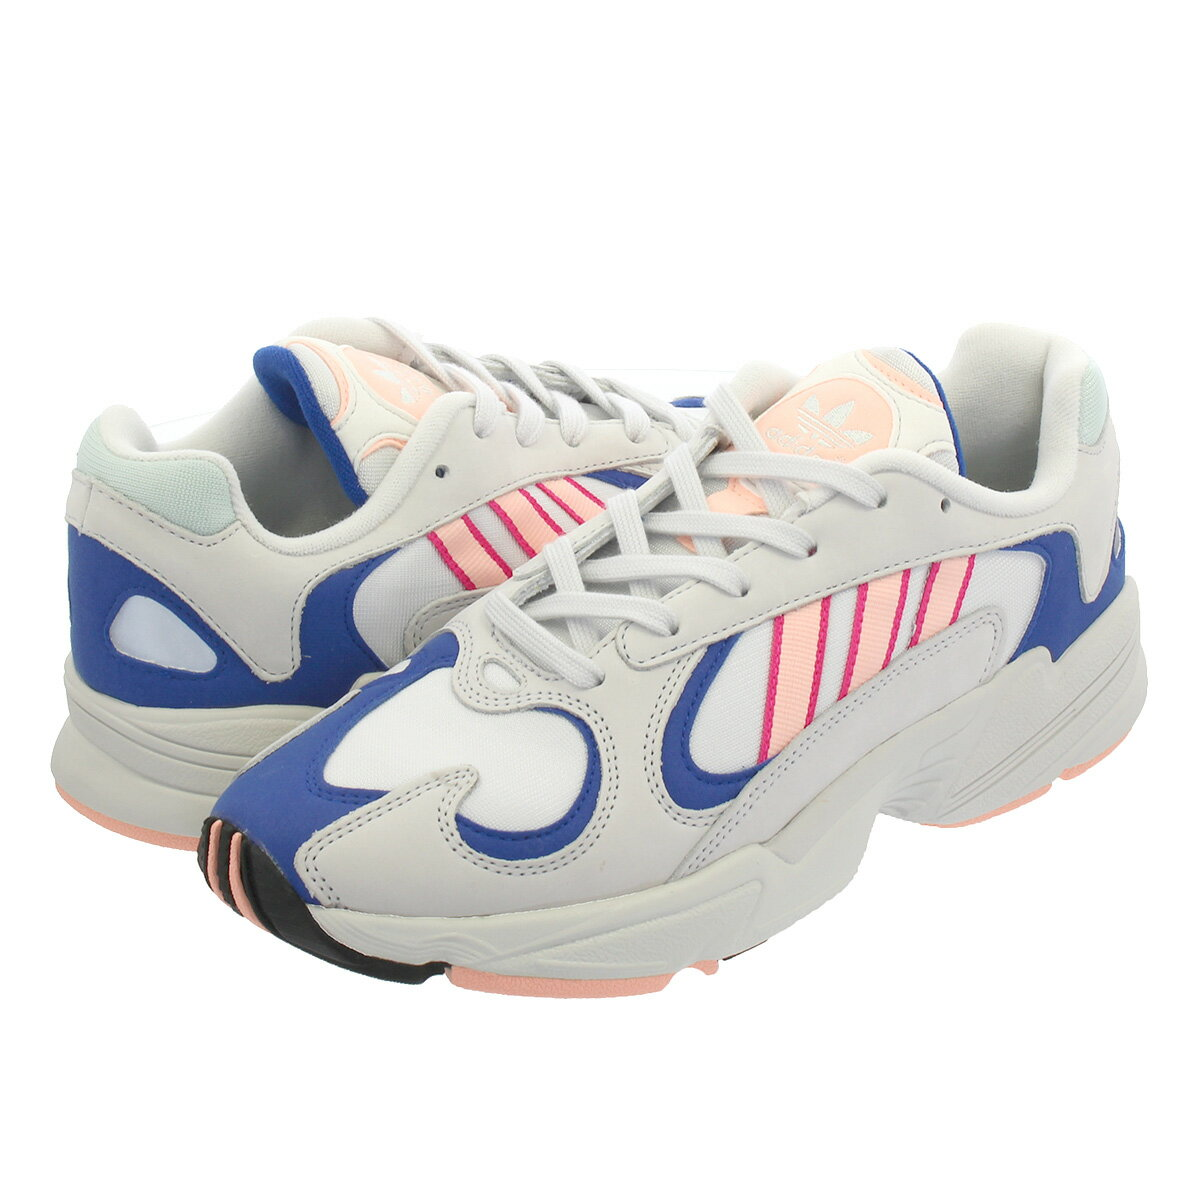 adidas YUNG-1 CRYSTAL 【adidas Originals】 アディダス ヤング 1 WHITE/CLEAR ORANGE/COLLEGE ROYAL bd7654